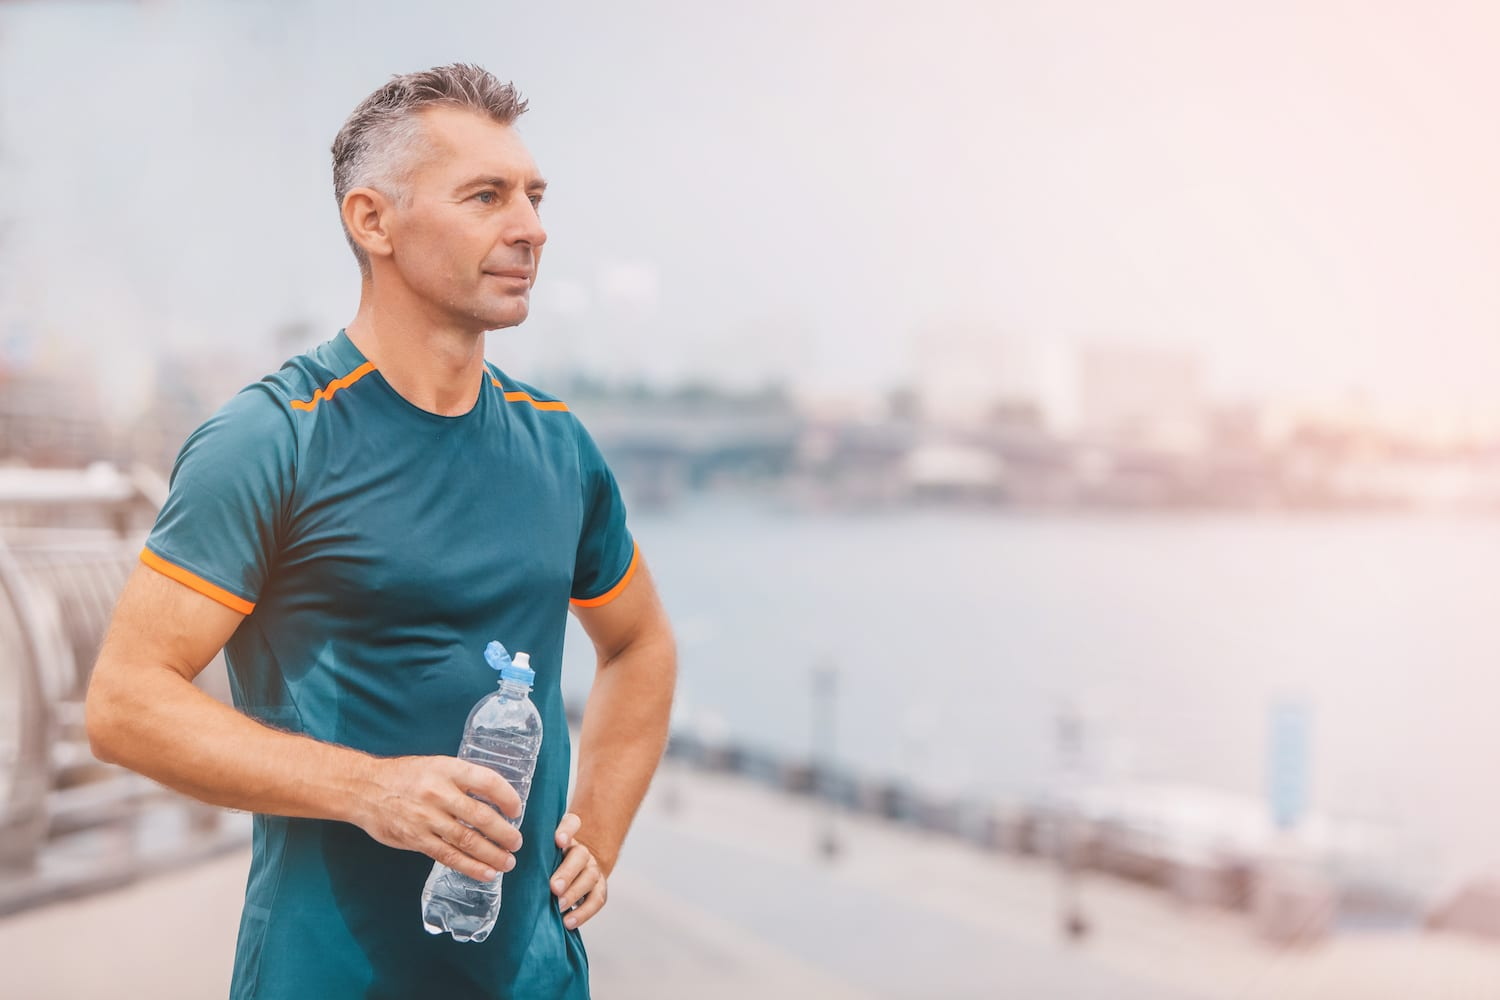 Portrait of healthy athletic middle aged man with fit body holding bottle of refreshing water, resting after workout or running. on the riverside. vintage color | Acadian Hearing